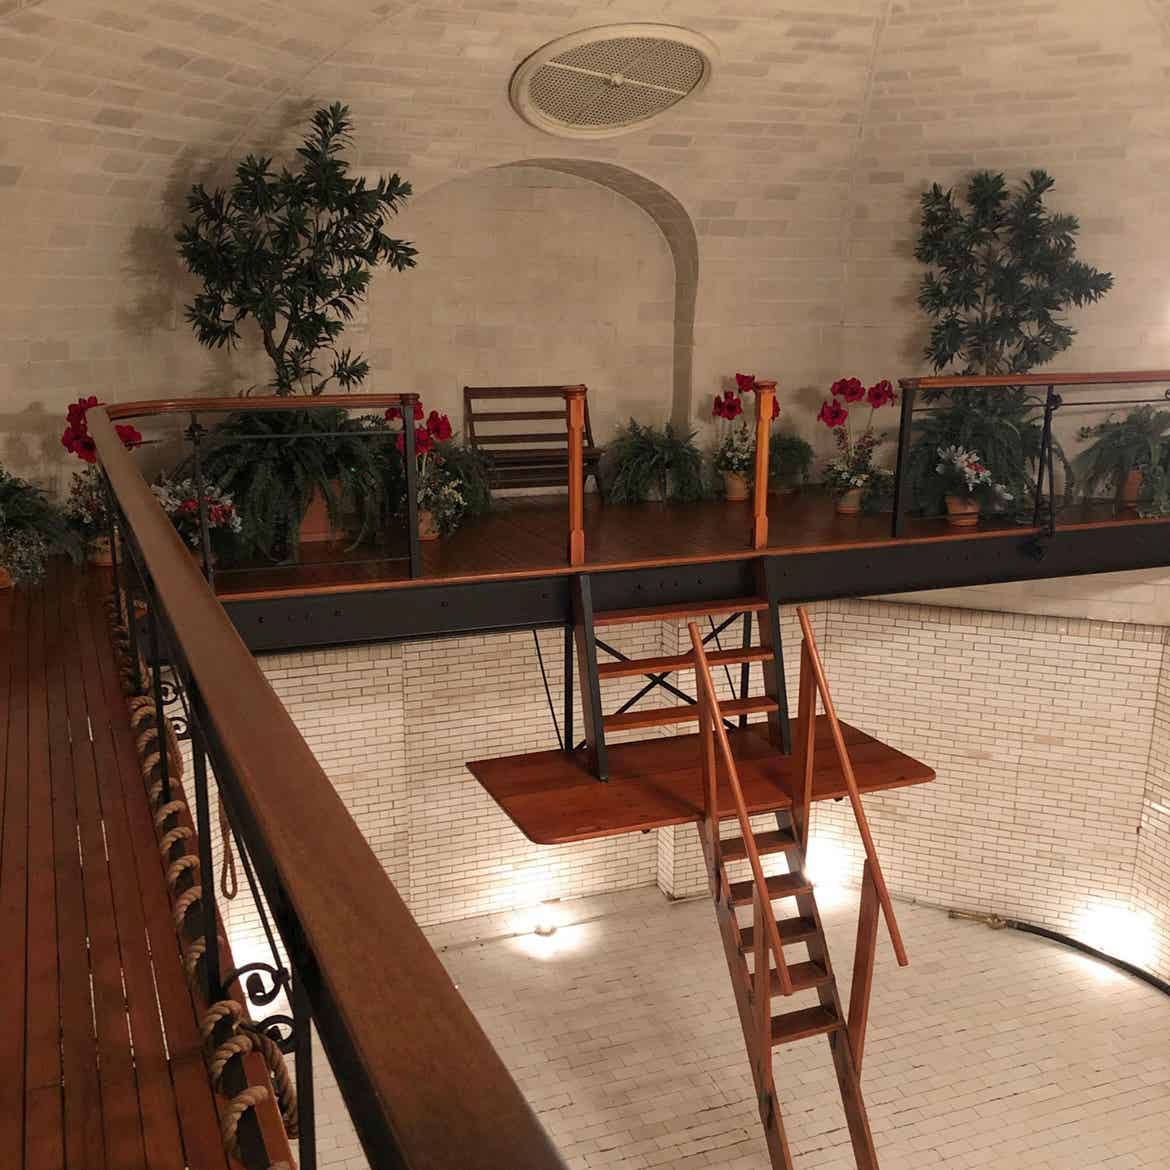 The empty indoor pool of the Biltmore Estate in the evening with an elaborate wooden ladder for swimmers surrounded by lush greenery.